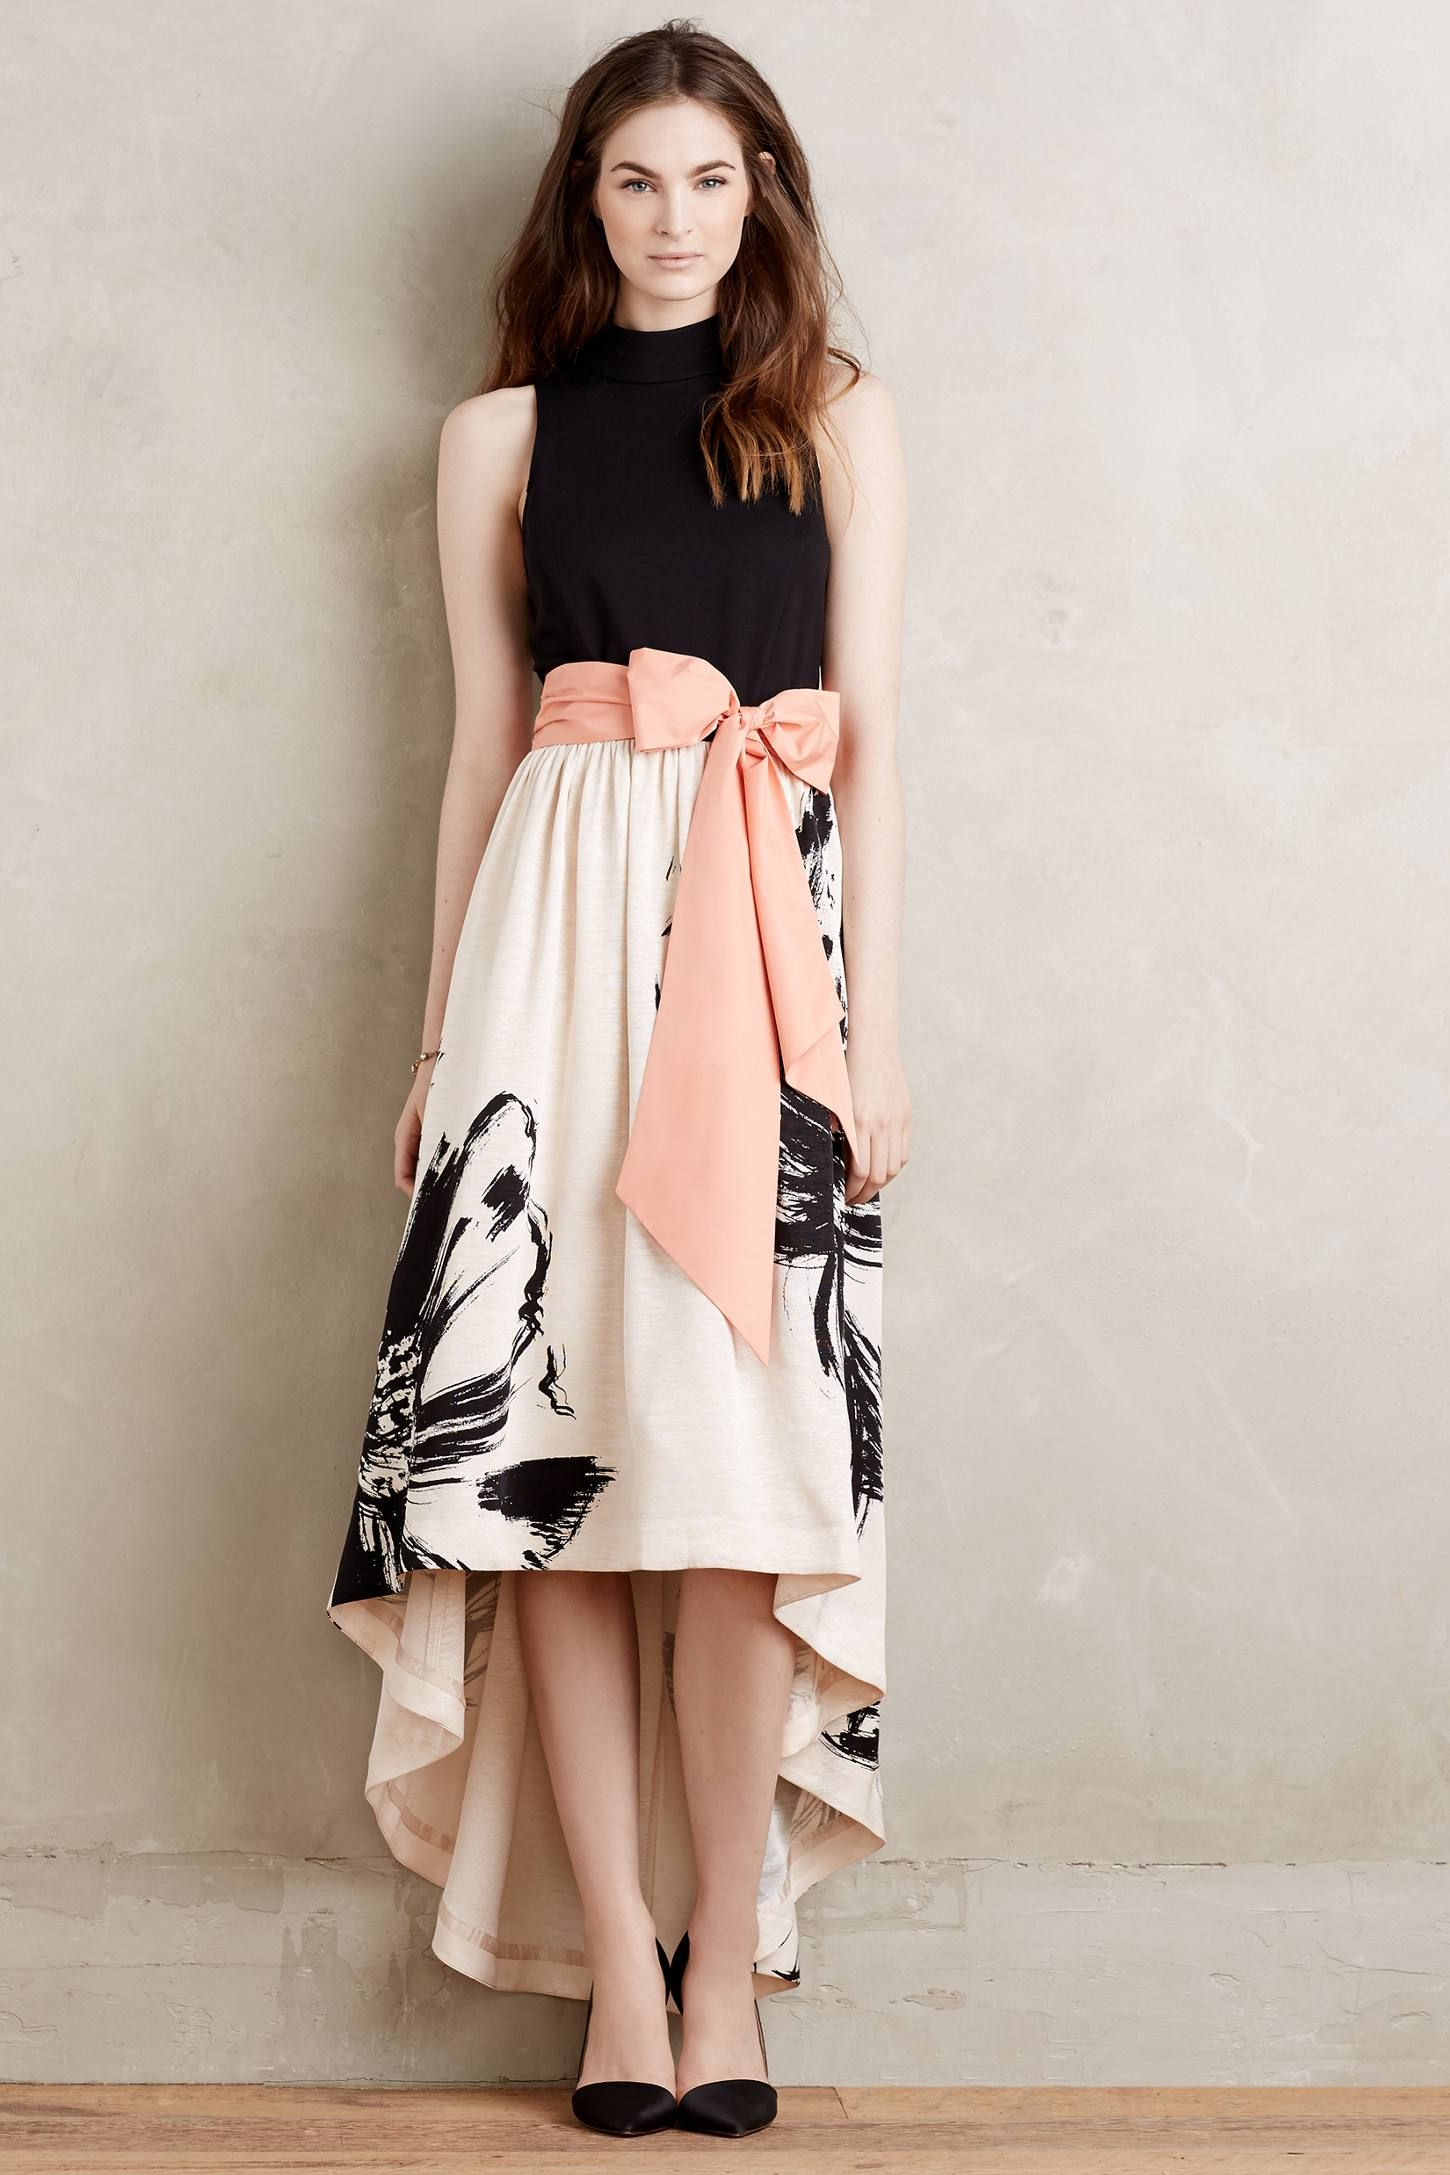 e191dacfd66 Anthropologie s New Arrivals  Fall Dresses   Skirts